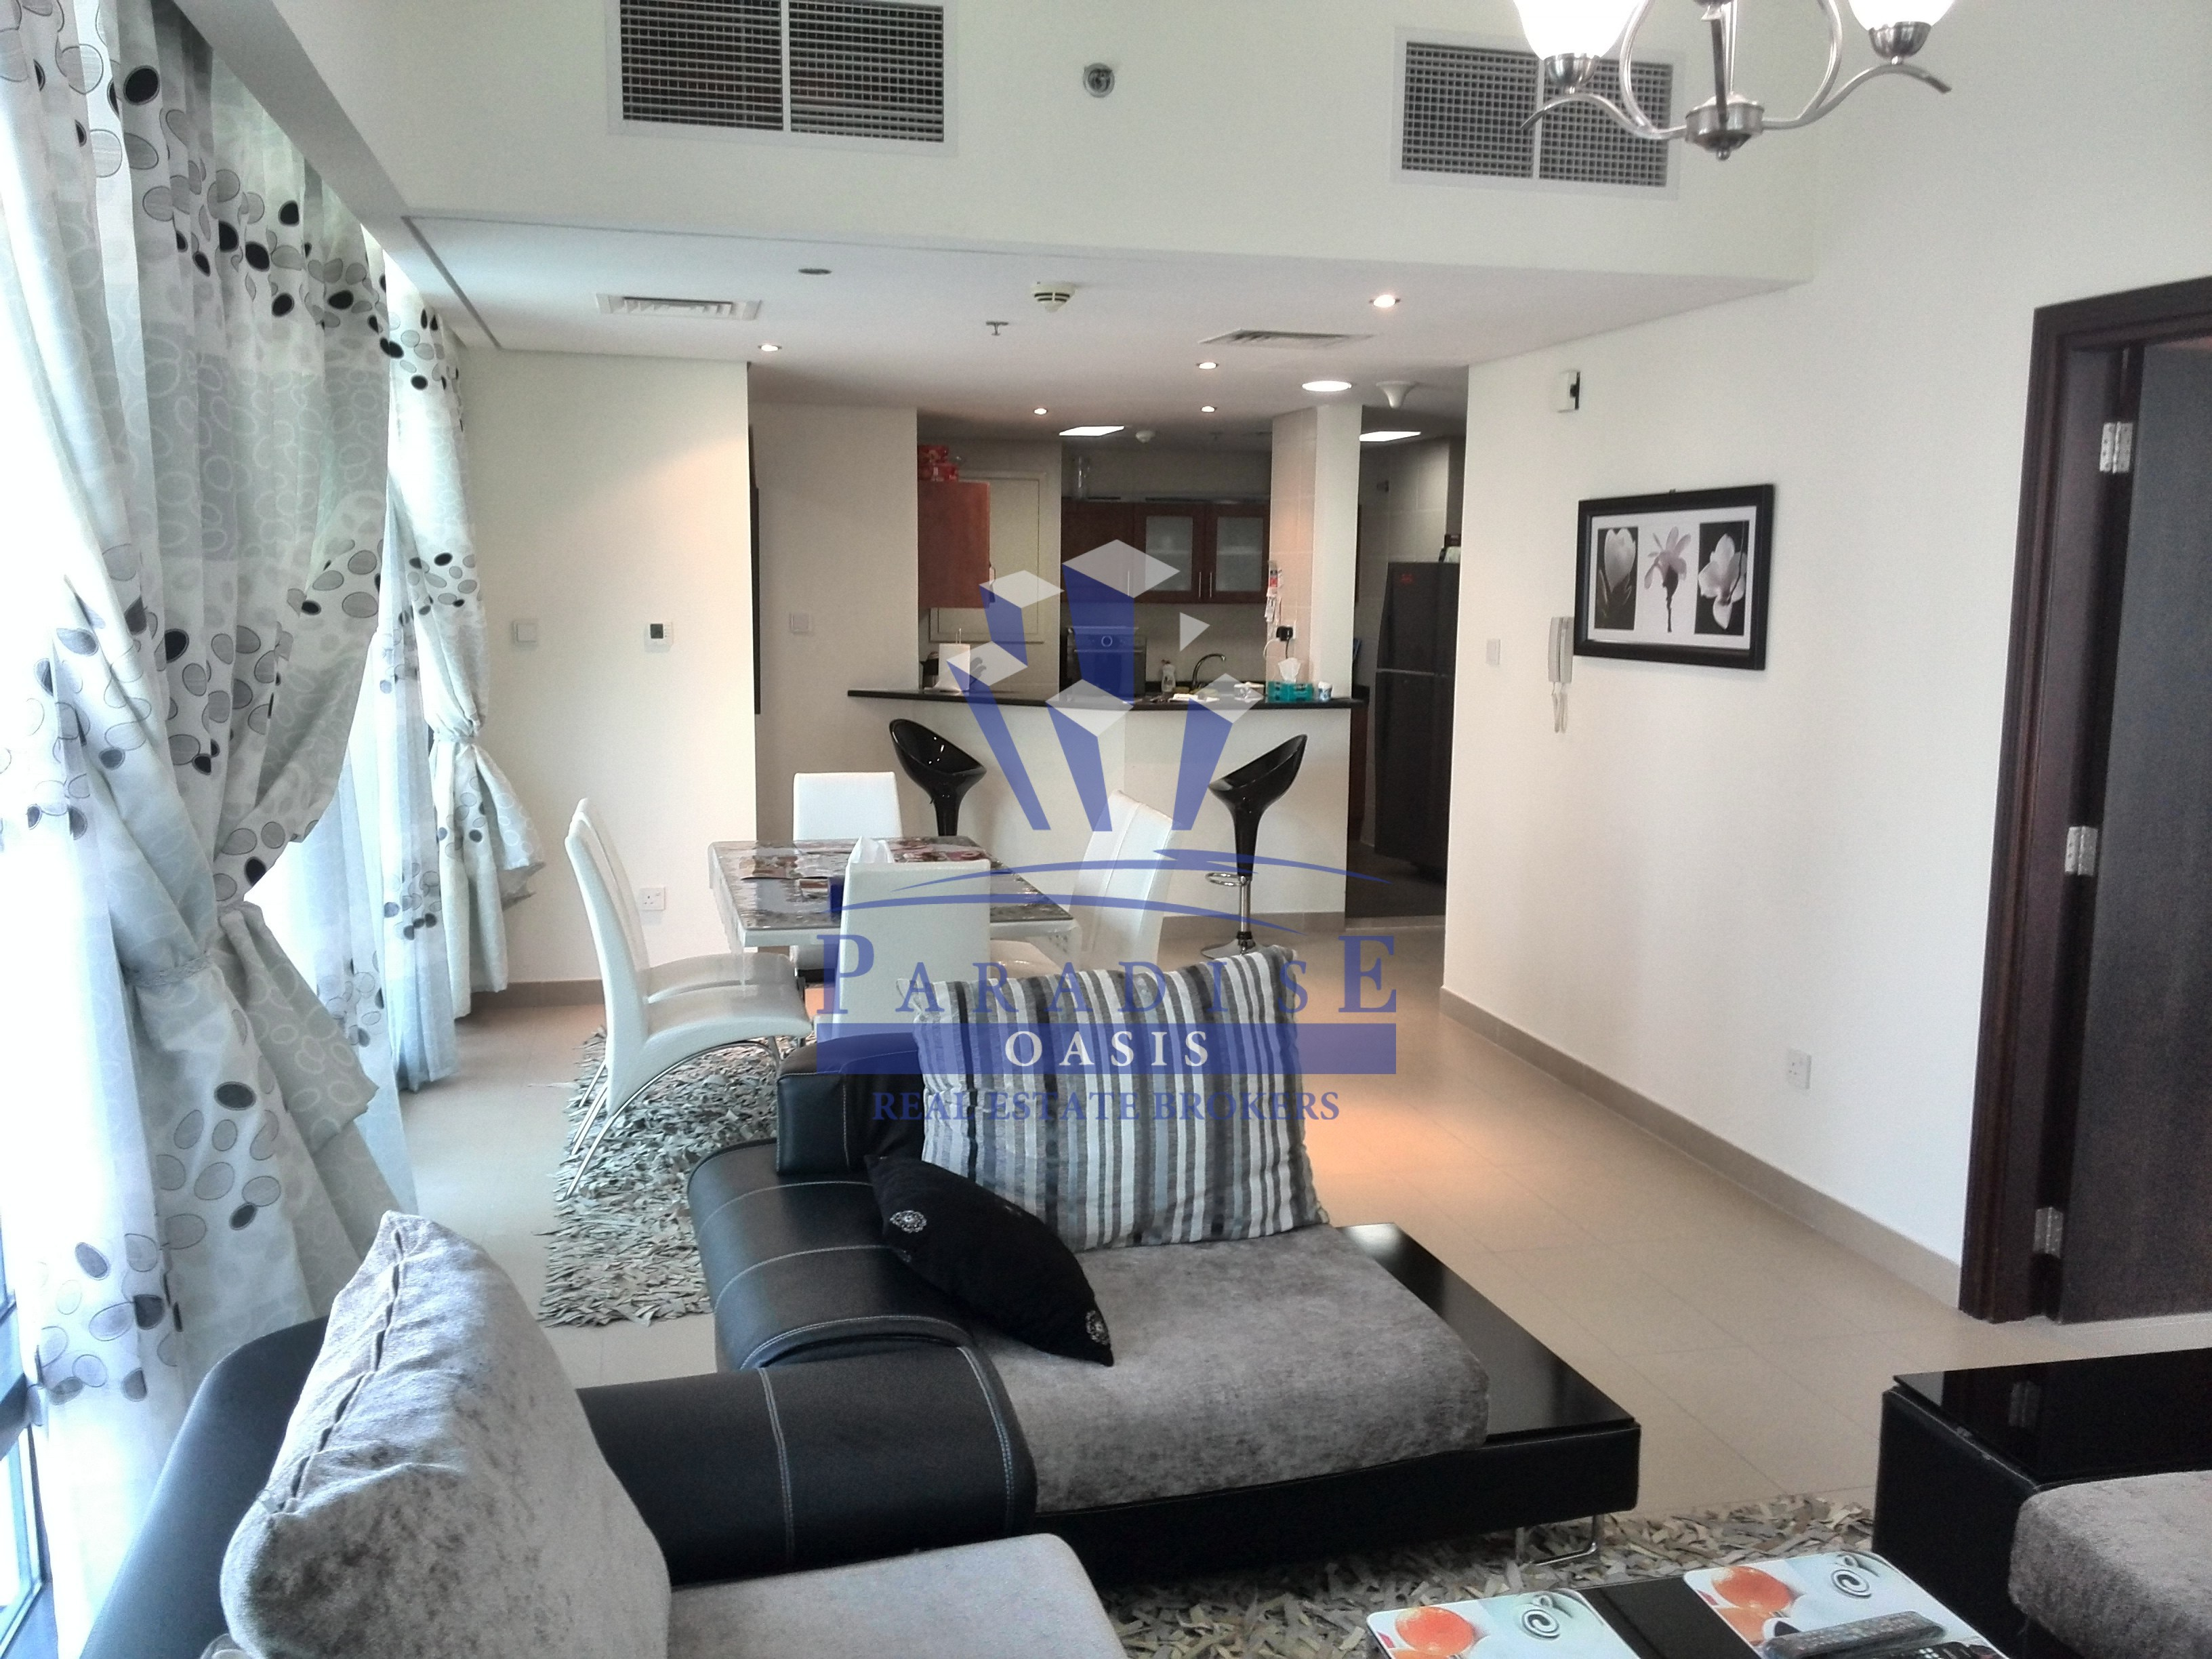 furnished 2BR for rent in JLT lakeside Residenc tower - myUAEguide.com